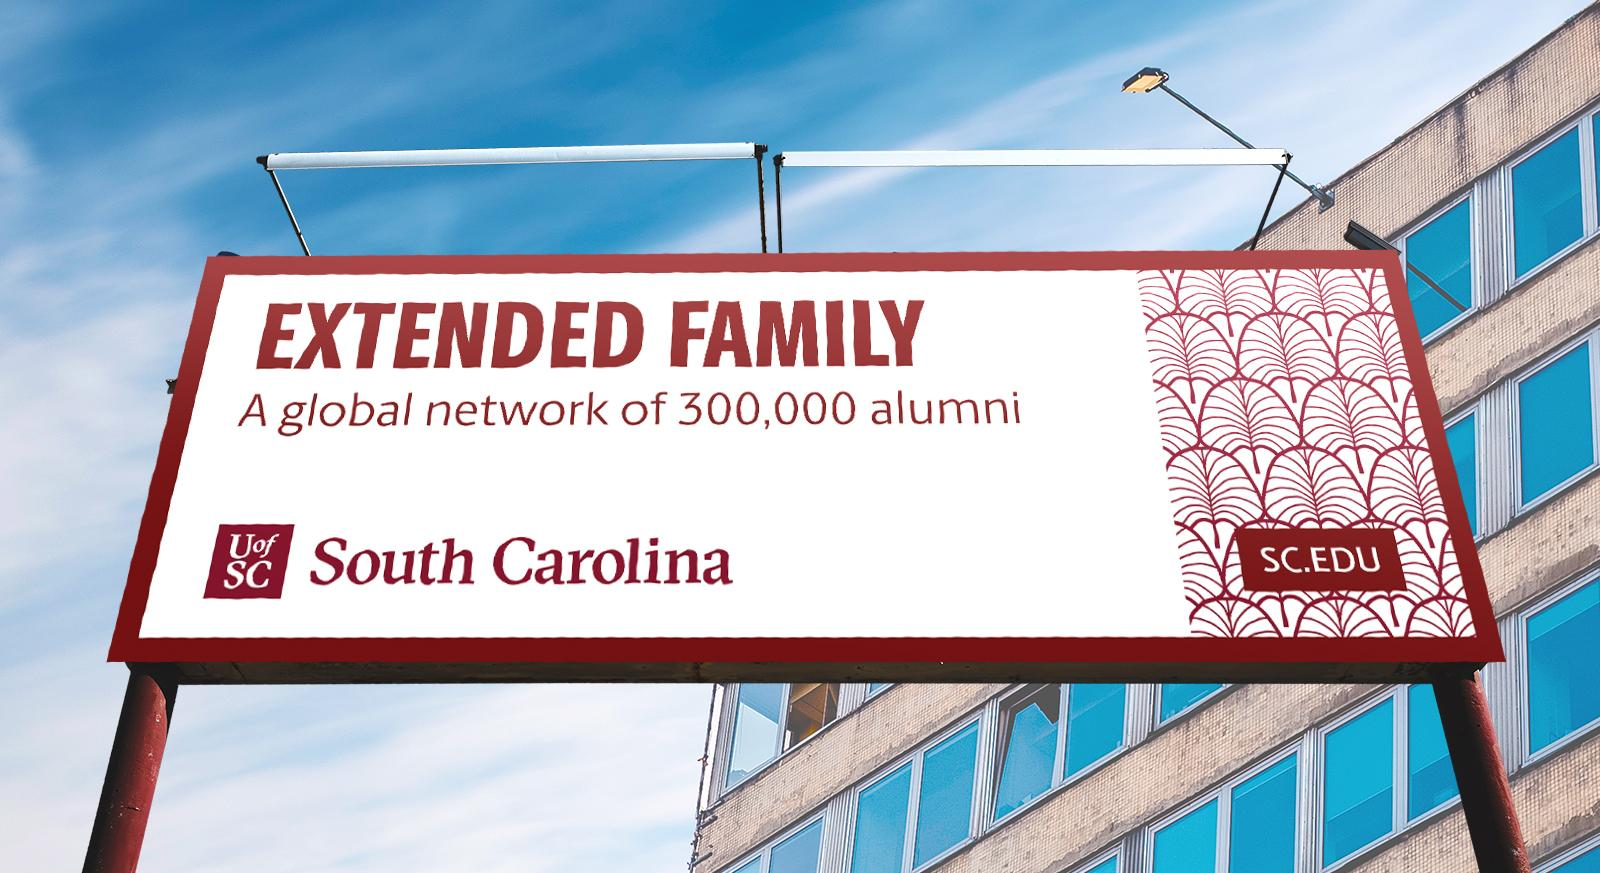 This billboard message leads with an emotional message — rather than a data point or ranking — to appeal to audiences while reinforcing the university's core value proposition.